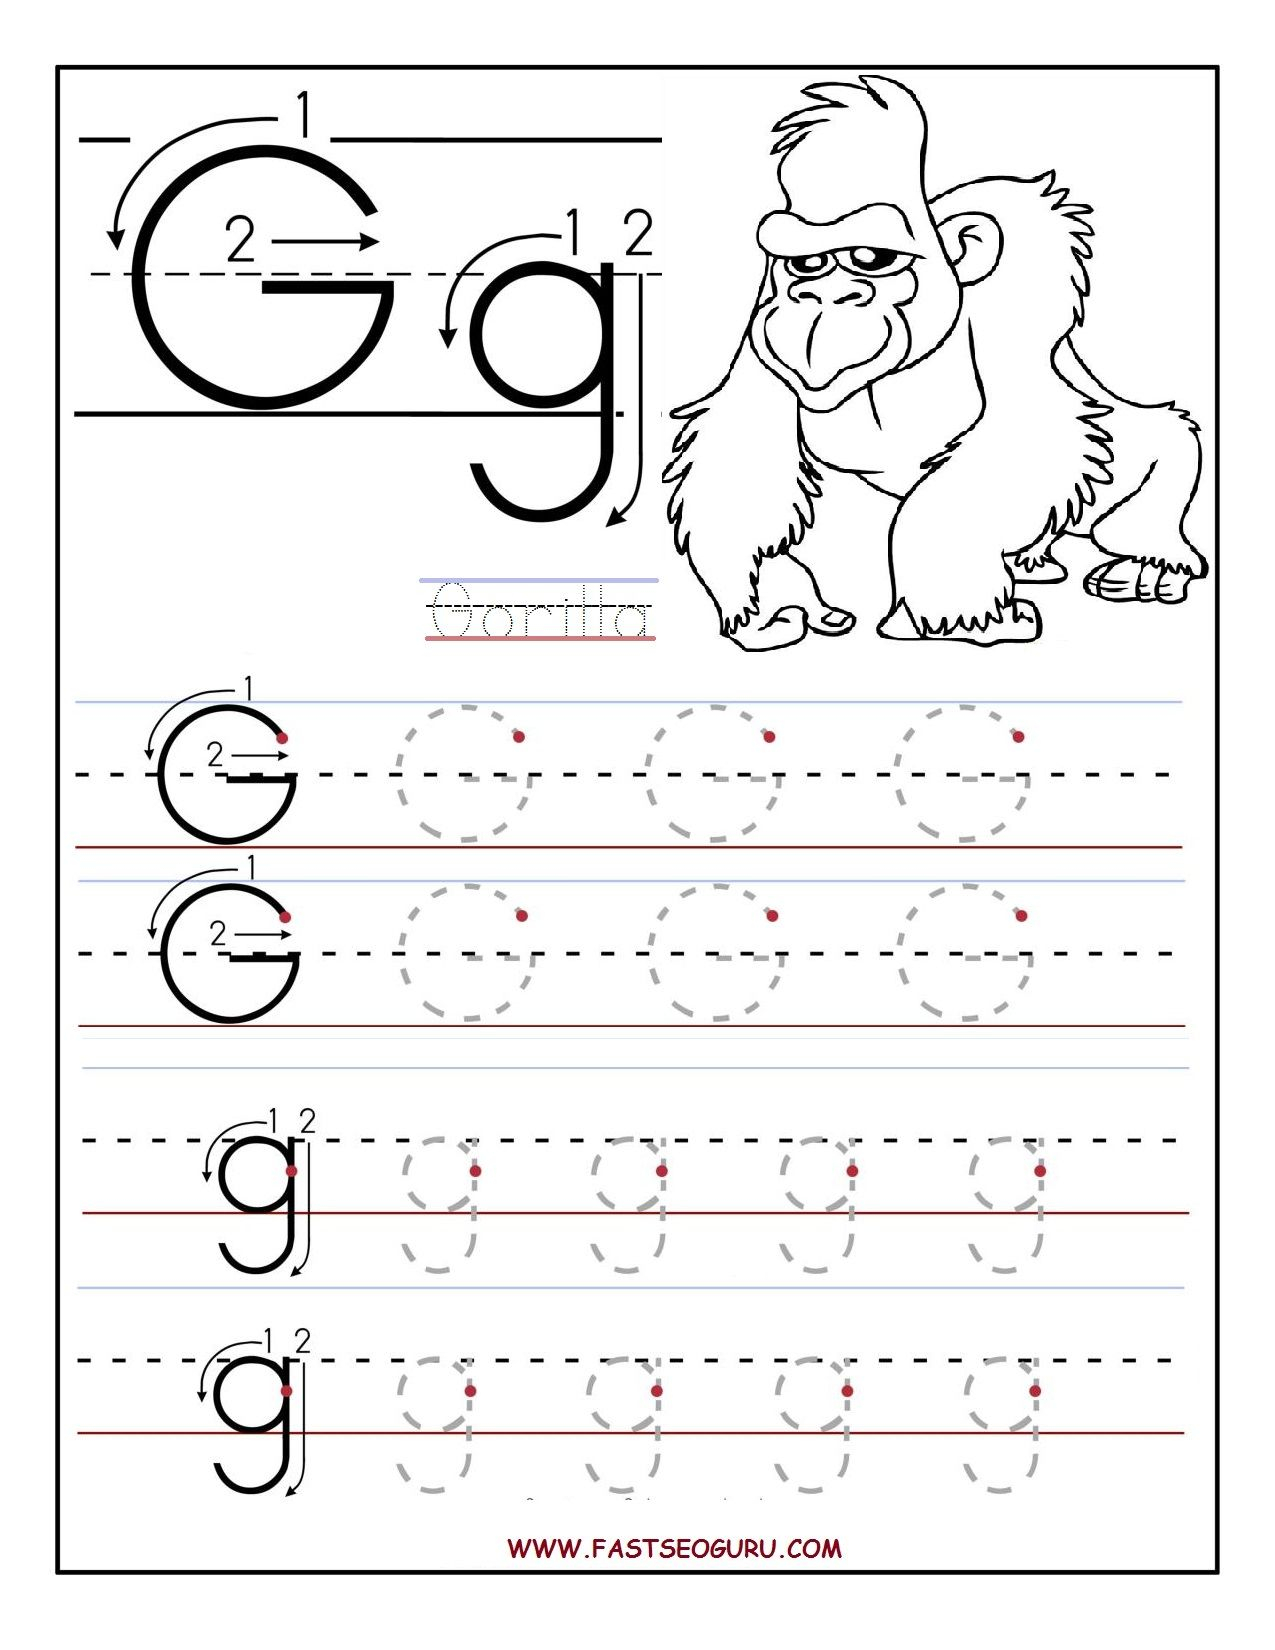 Lowercase Letter G Tracing Worksheets For Preschool